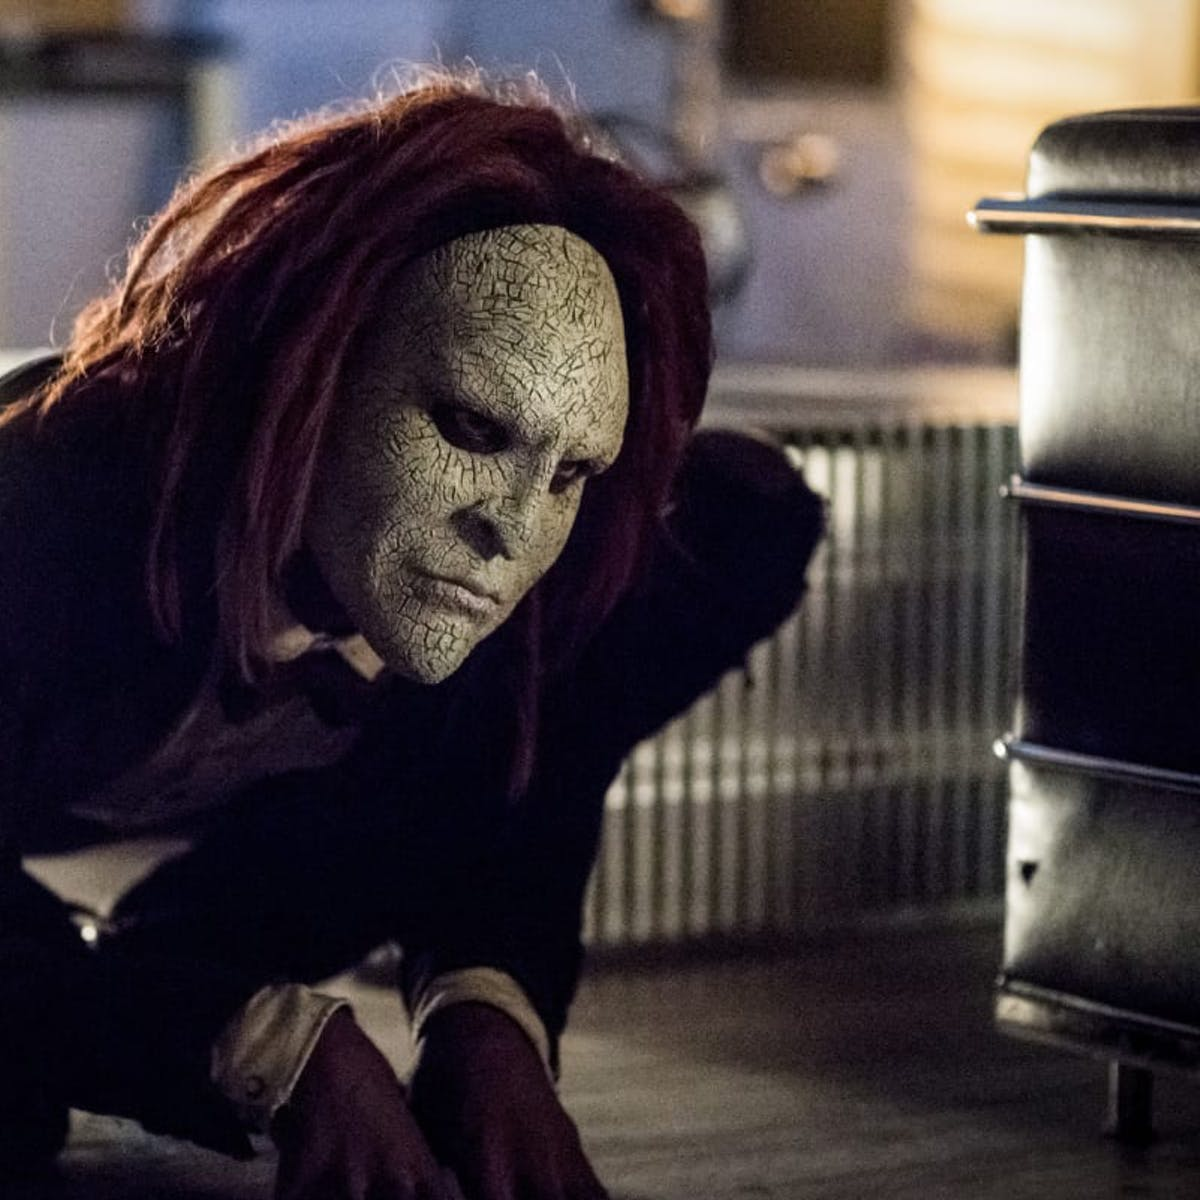 The Flash' Had Its Creepiest Episode Ever Two Weeks After